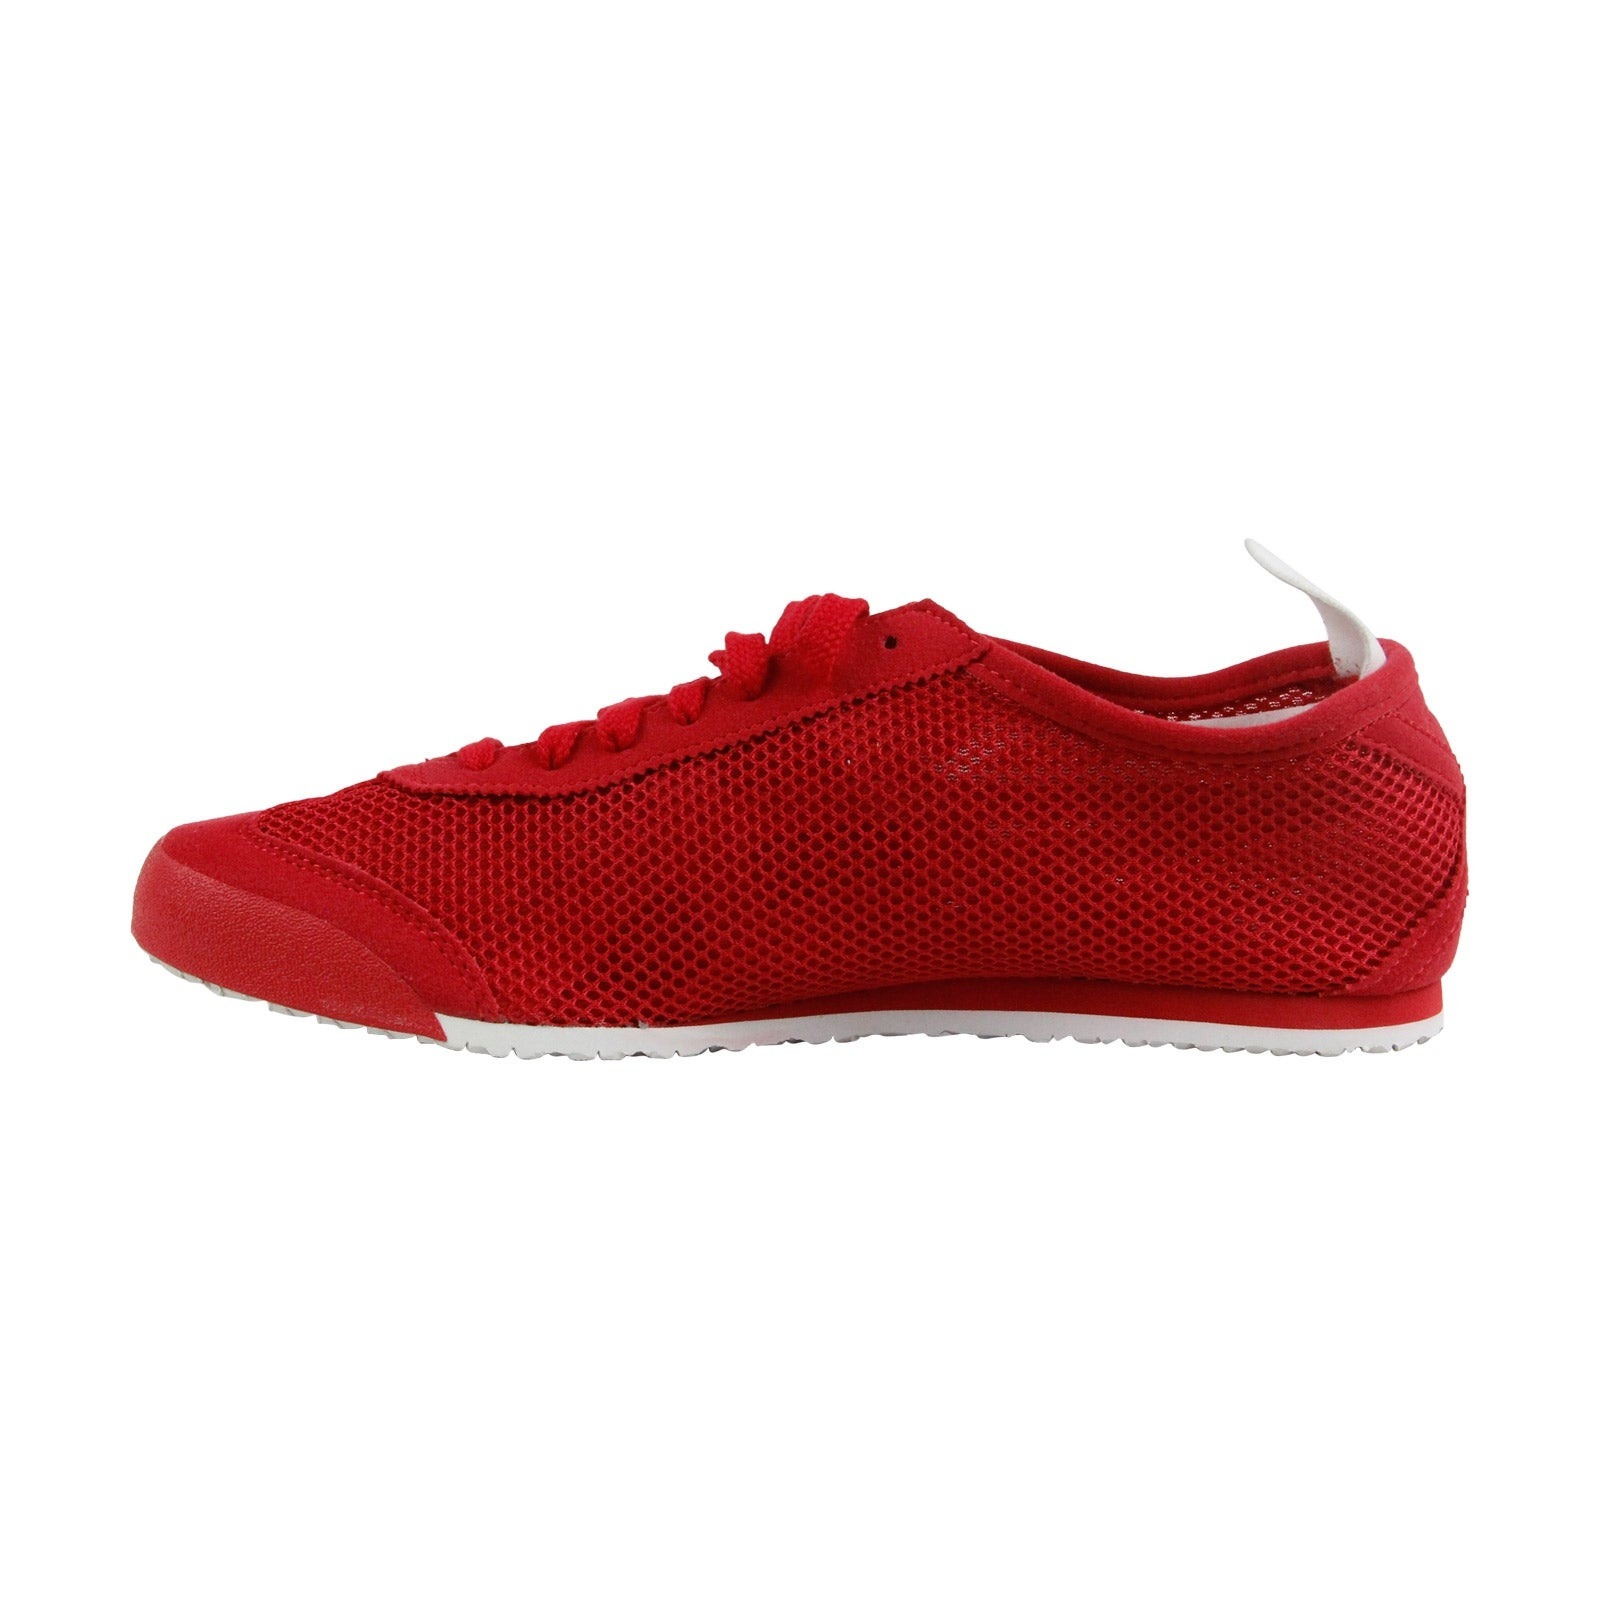 online store e403f be259 Onitsuka Tiger Mexico 66 Mens Red Mesh Sneakers Lace Up Shoes